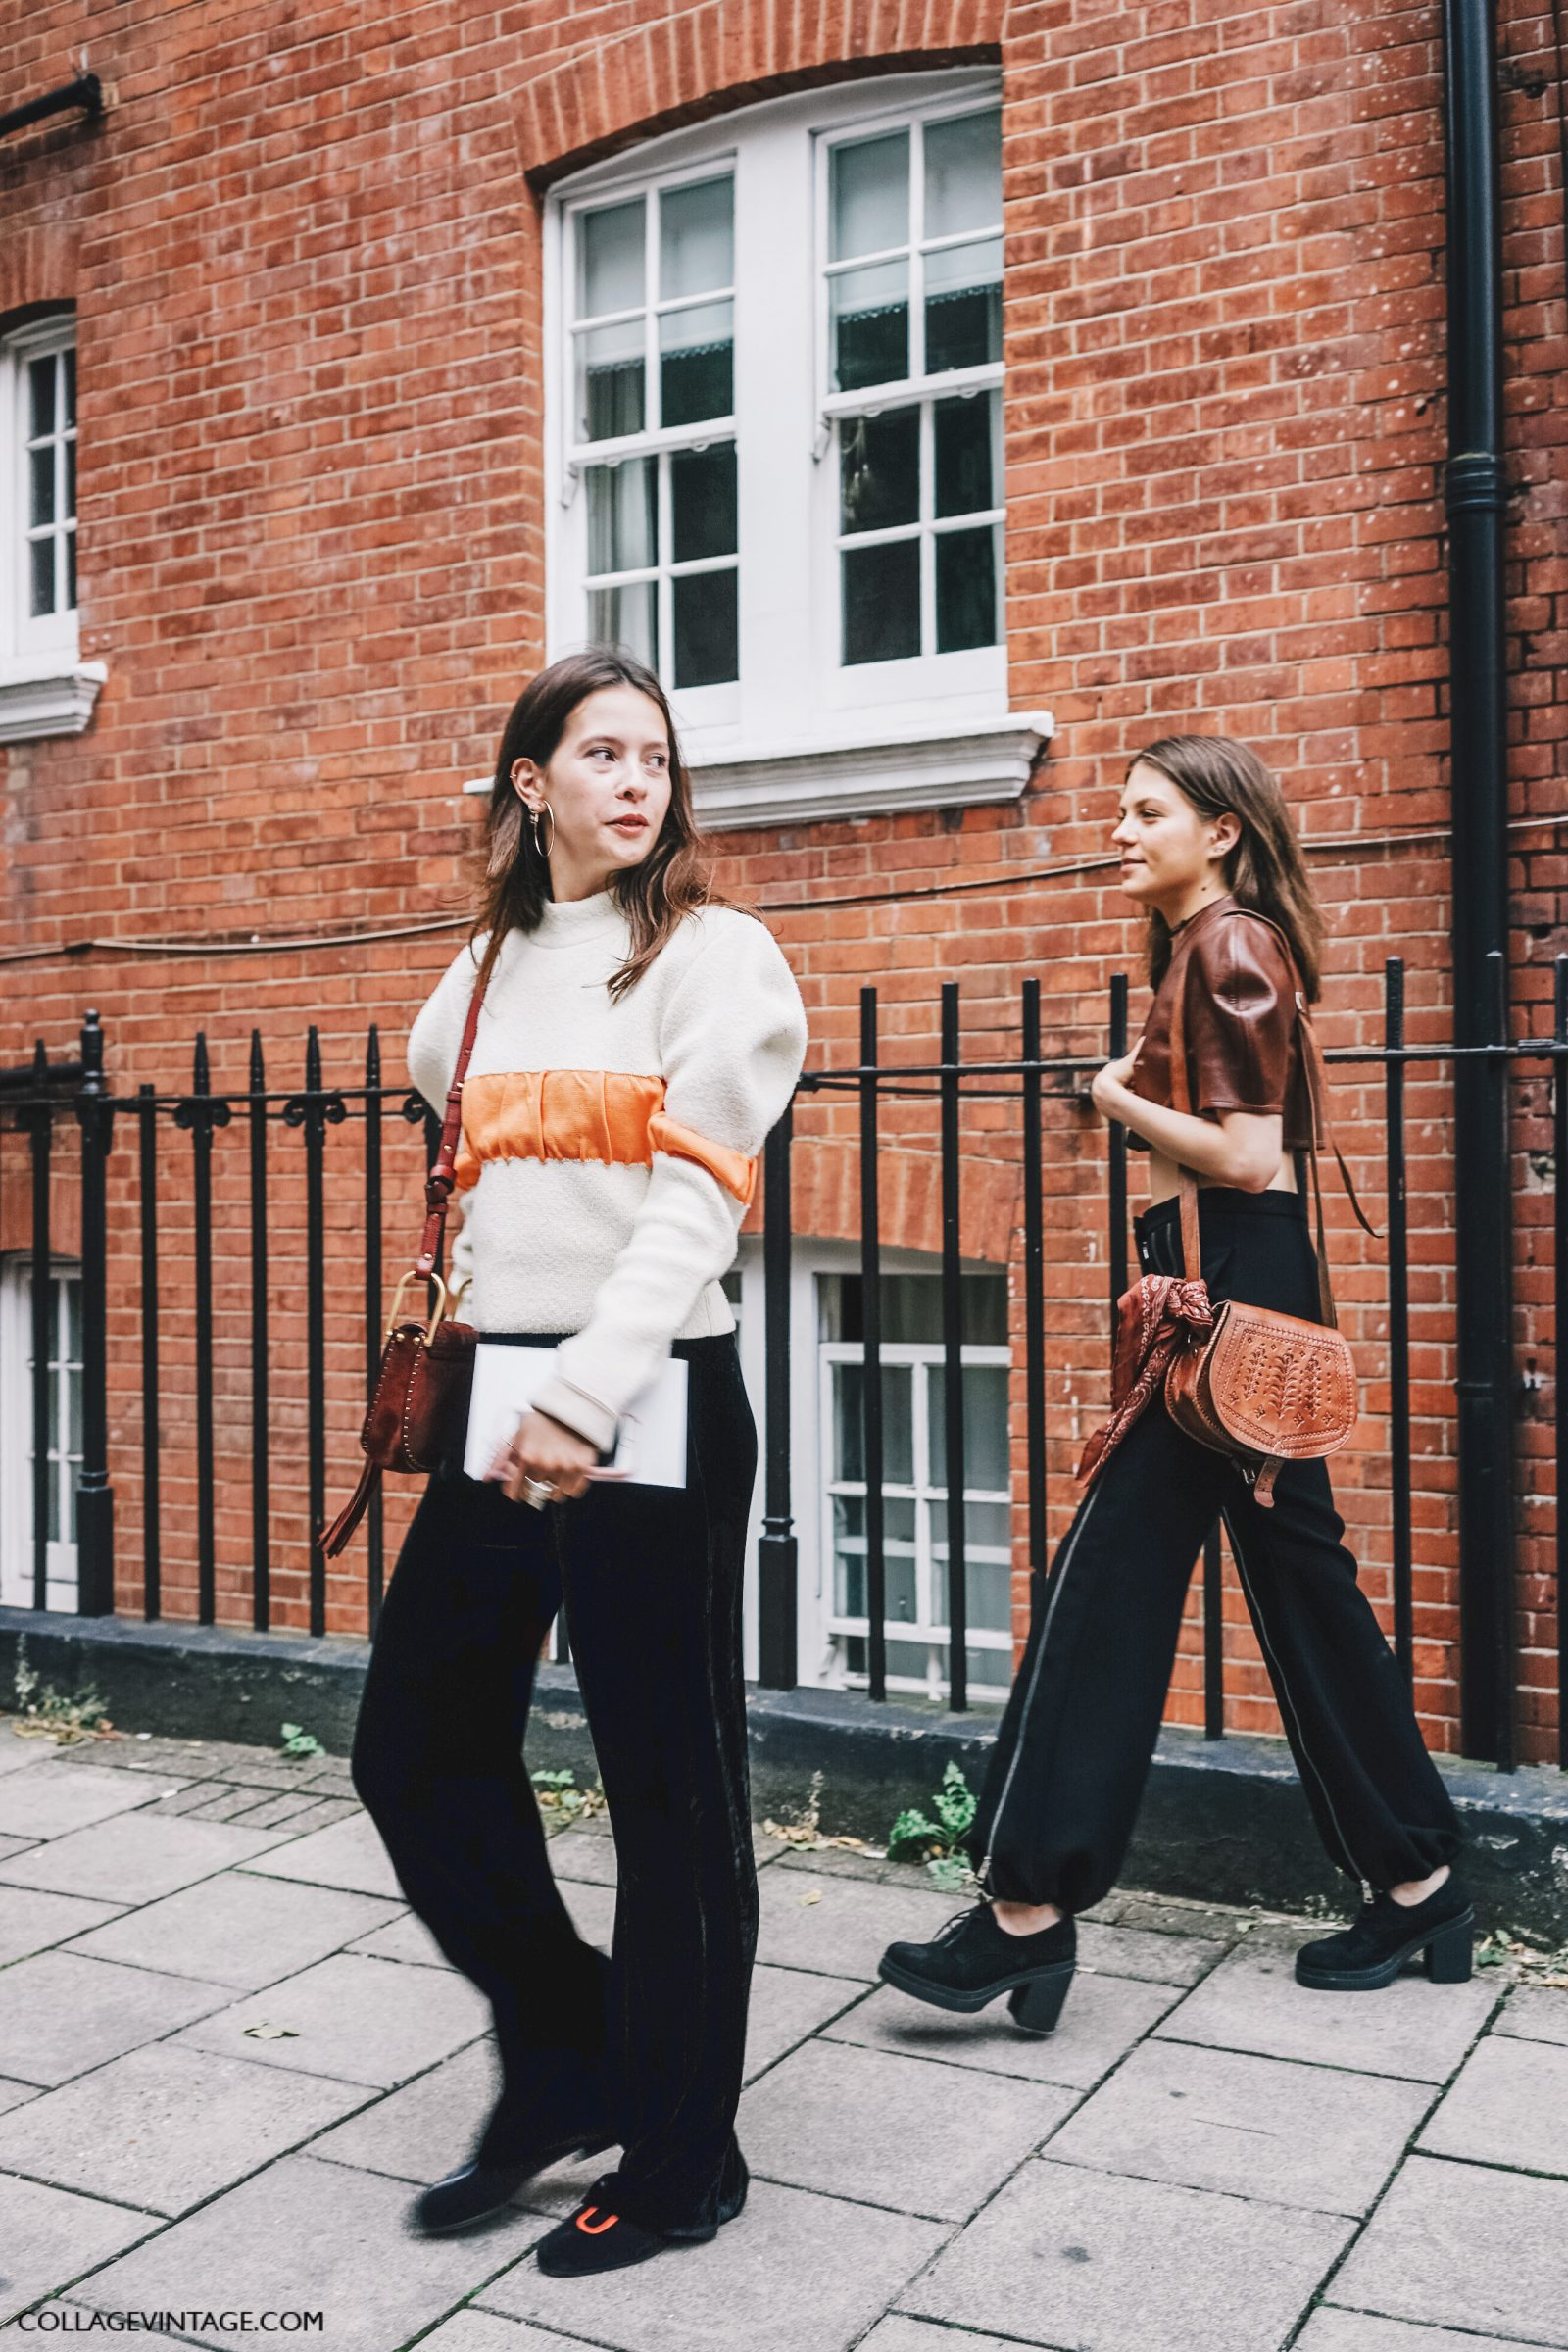 lfw-london_fashion_week_ss17-street_style-outfits-collage_vintage-vintage-jw_anderson-house_of_holland-241